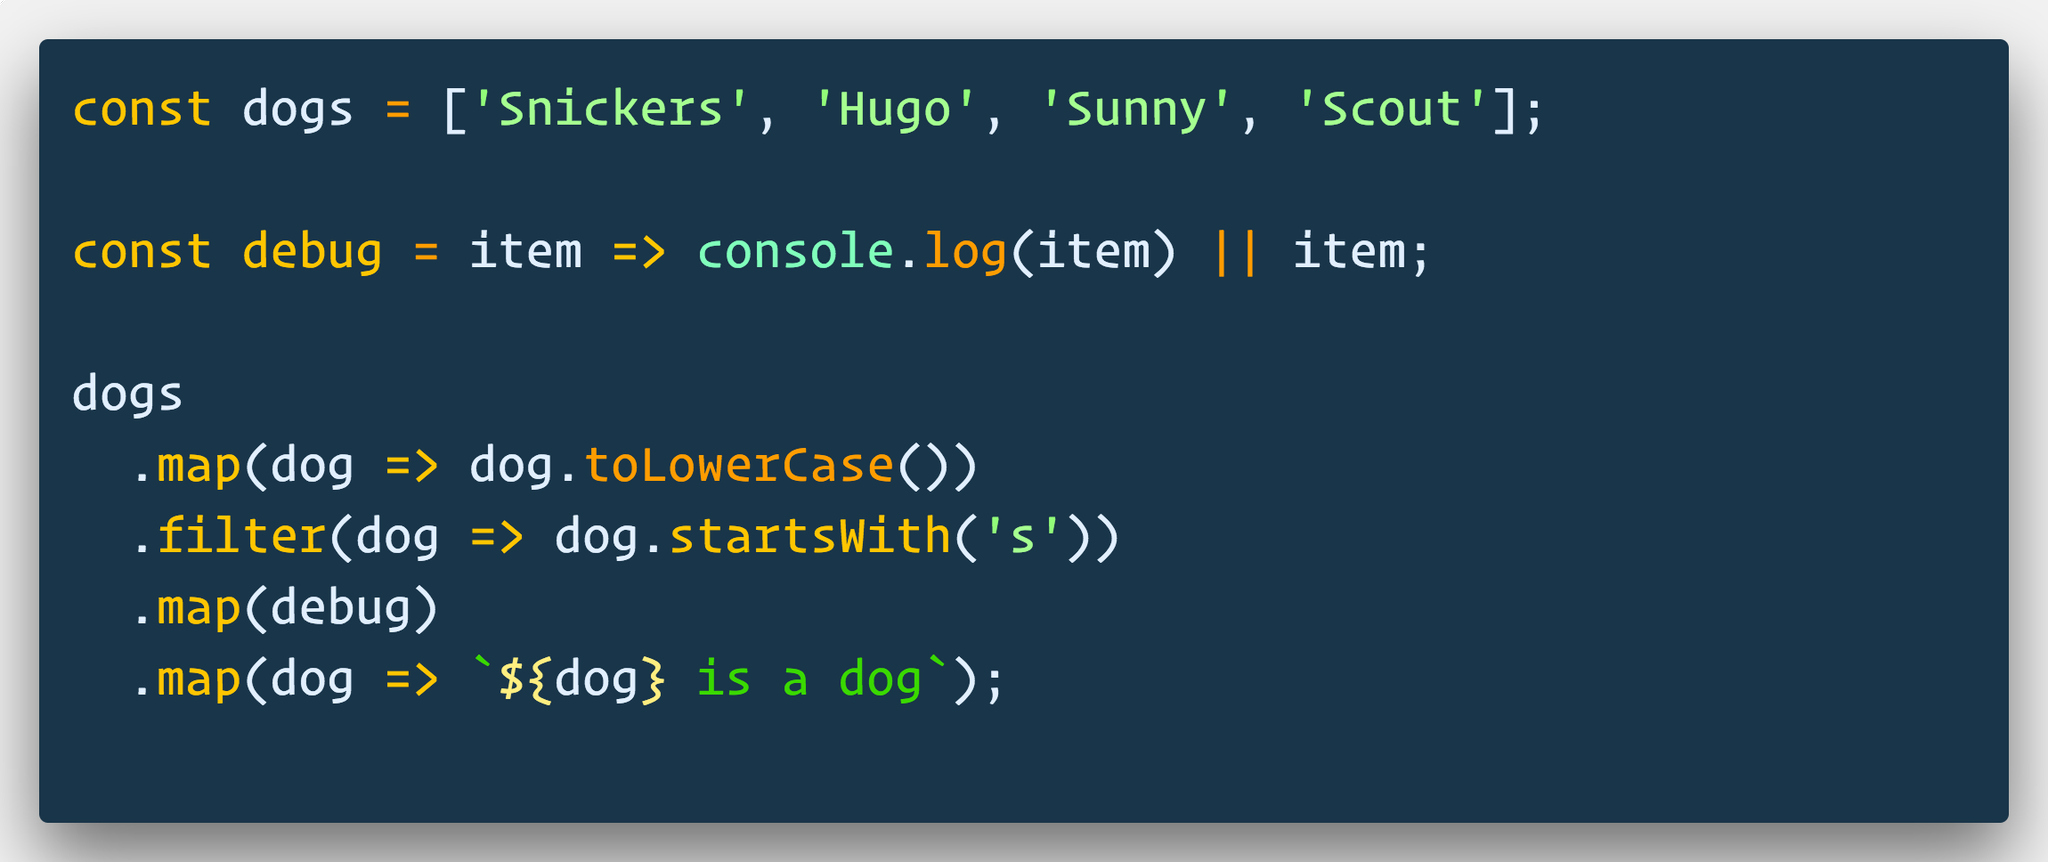 🔥 If you are trying to debug something in the middle of chaining array methods, just map over it, console.log, and return it.   Since console.log returns nothing, it will just pass the entire array through.   You can even make a handle little debug function 🐛 https://t.co/HCtLh4QYm6